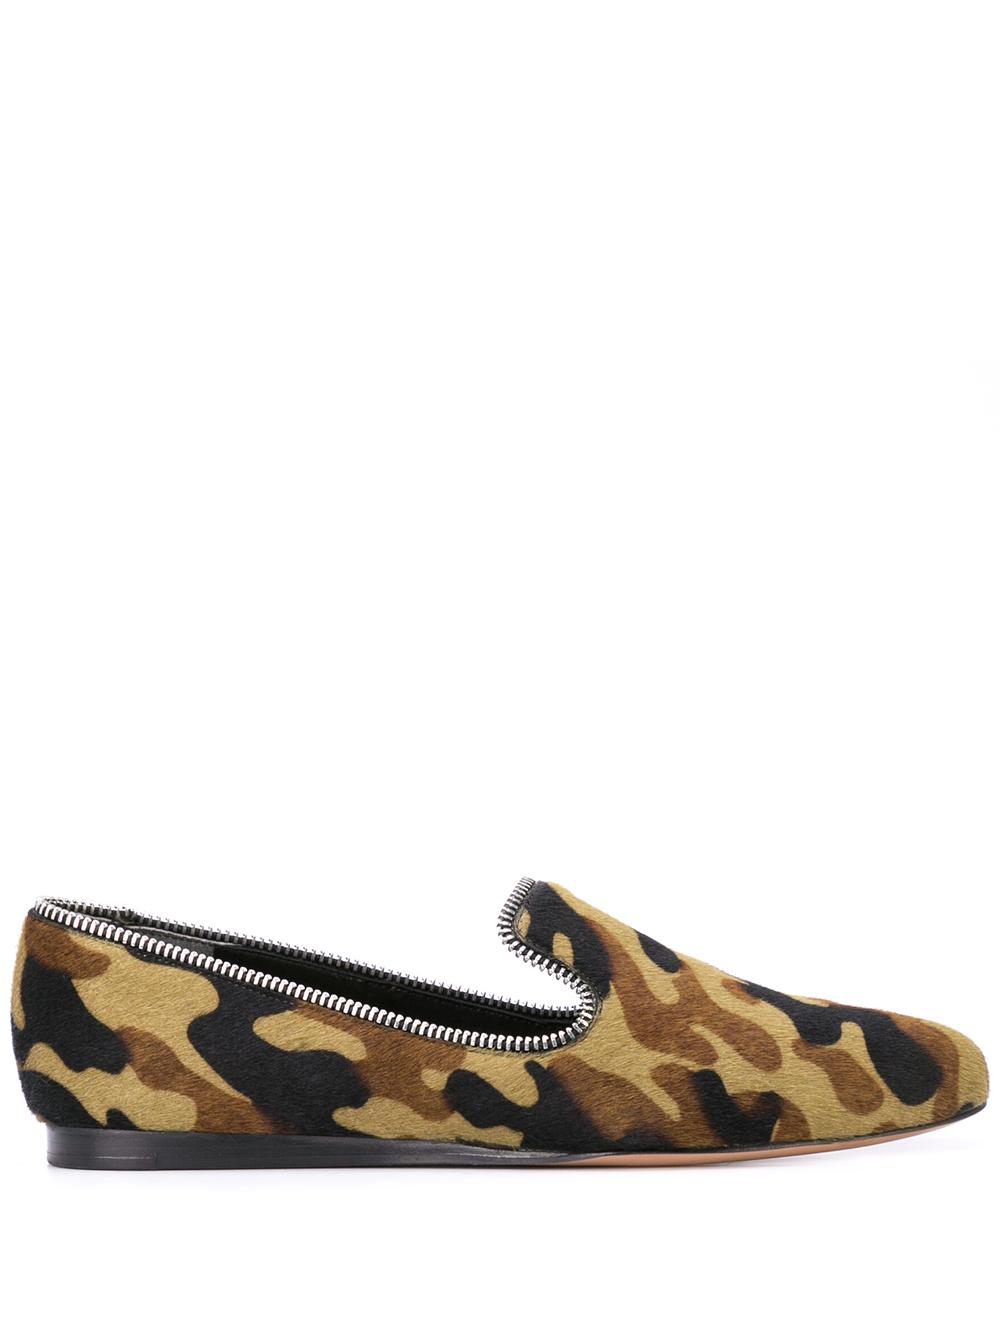 Camo Loafer With Zipper Trim